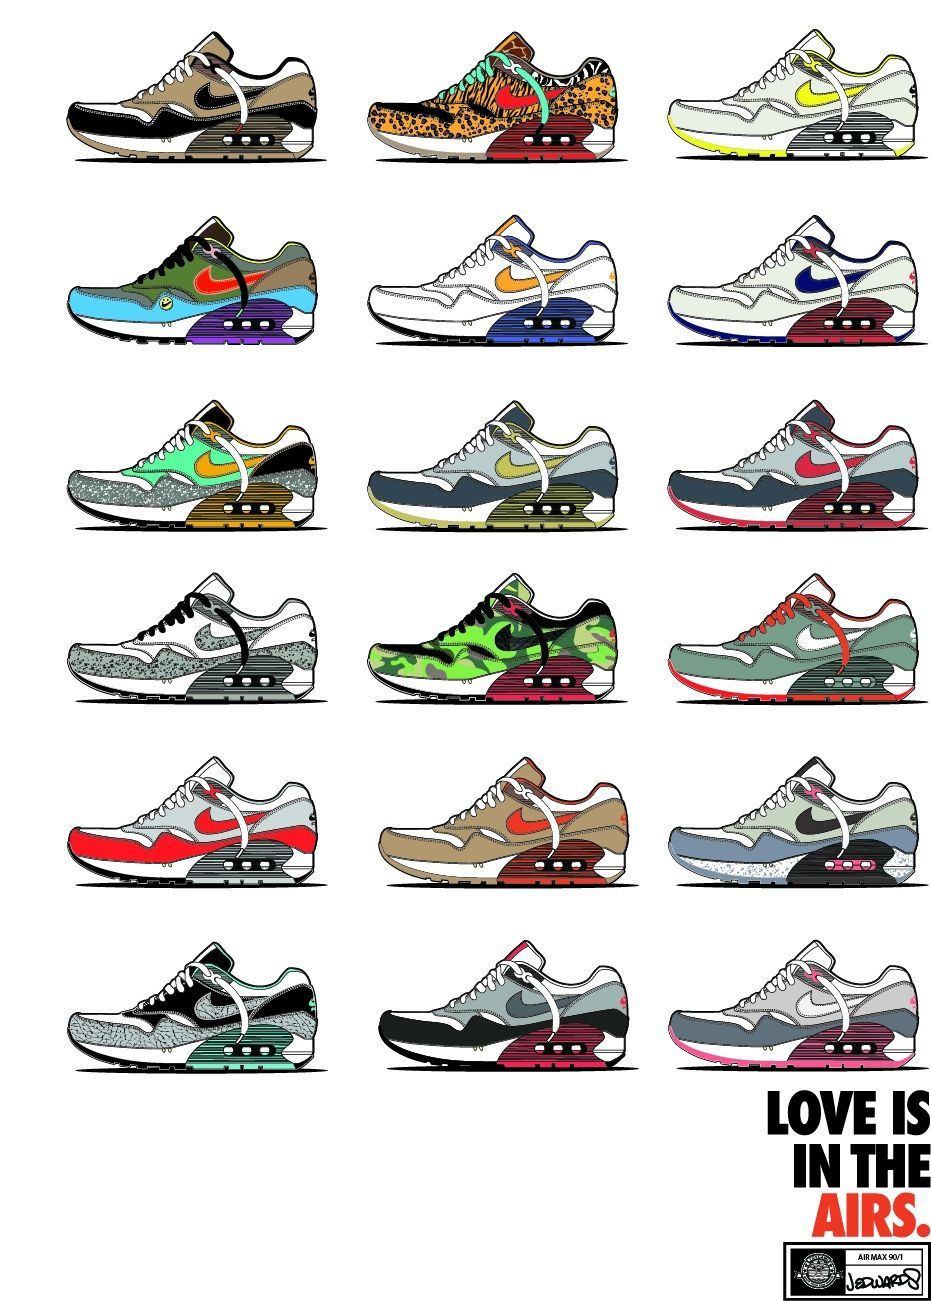 ICONIC COLORWAYS OF THE NEW NIKE AIR MAX 901 SNEAKER 19X 13